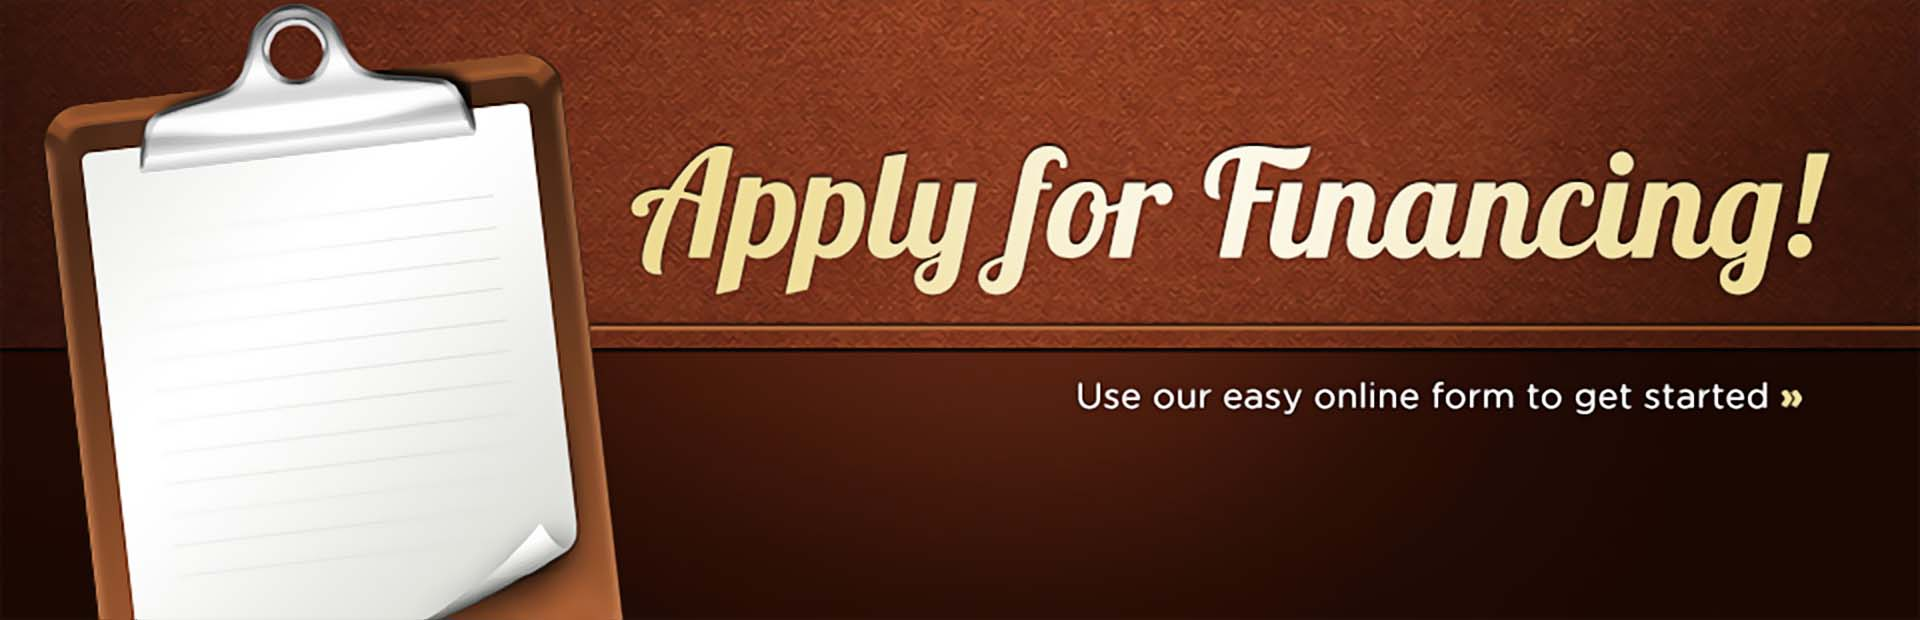 hight resolution of apply for financing